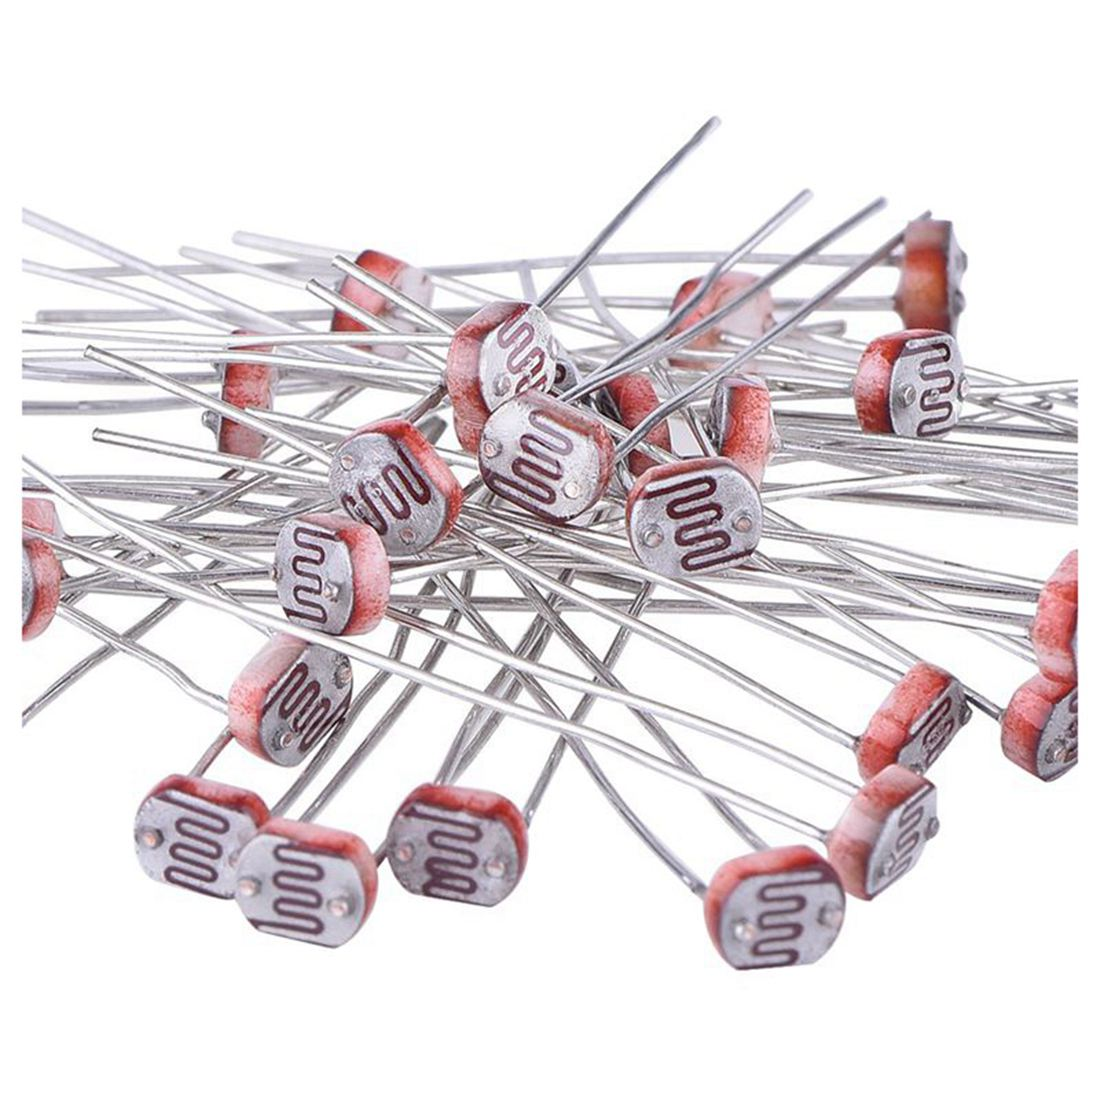 Details About 30 Pieces Photoresistor Photo Light Dependent Resistor 5 Mm Gm5539 G8c2 Symbol The Circuit Package Contents X Note Shooting And Different Displays May Cause Color Of Item In Picture A Little From